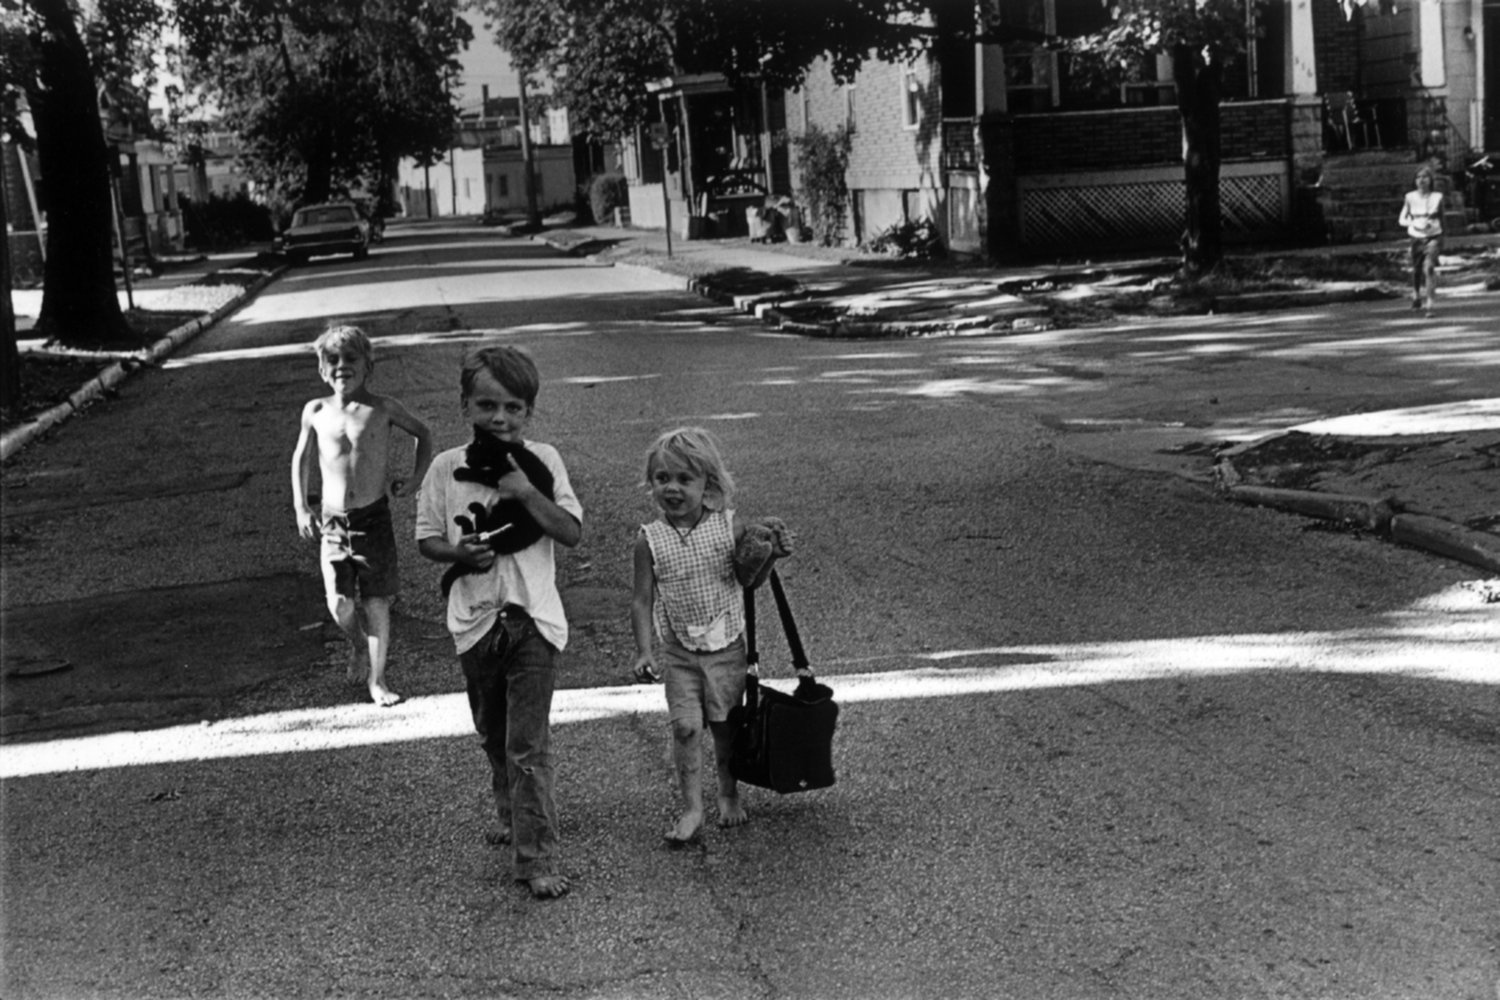 """© Peter Turnley<span class=""""photo-essays-link""""><span class=""""separator"""">・</span><a href=""""/photo-essays"""">Photo-essays</a></span>"""